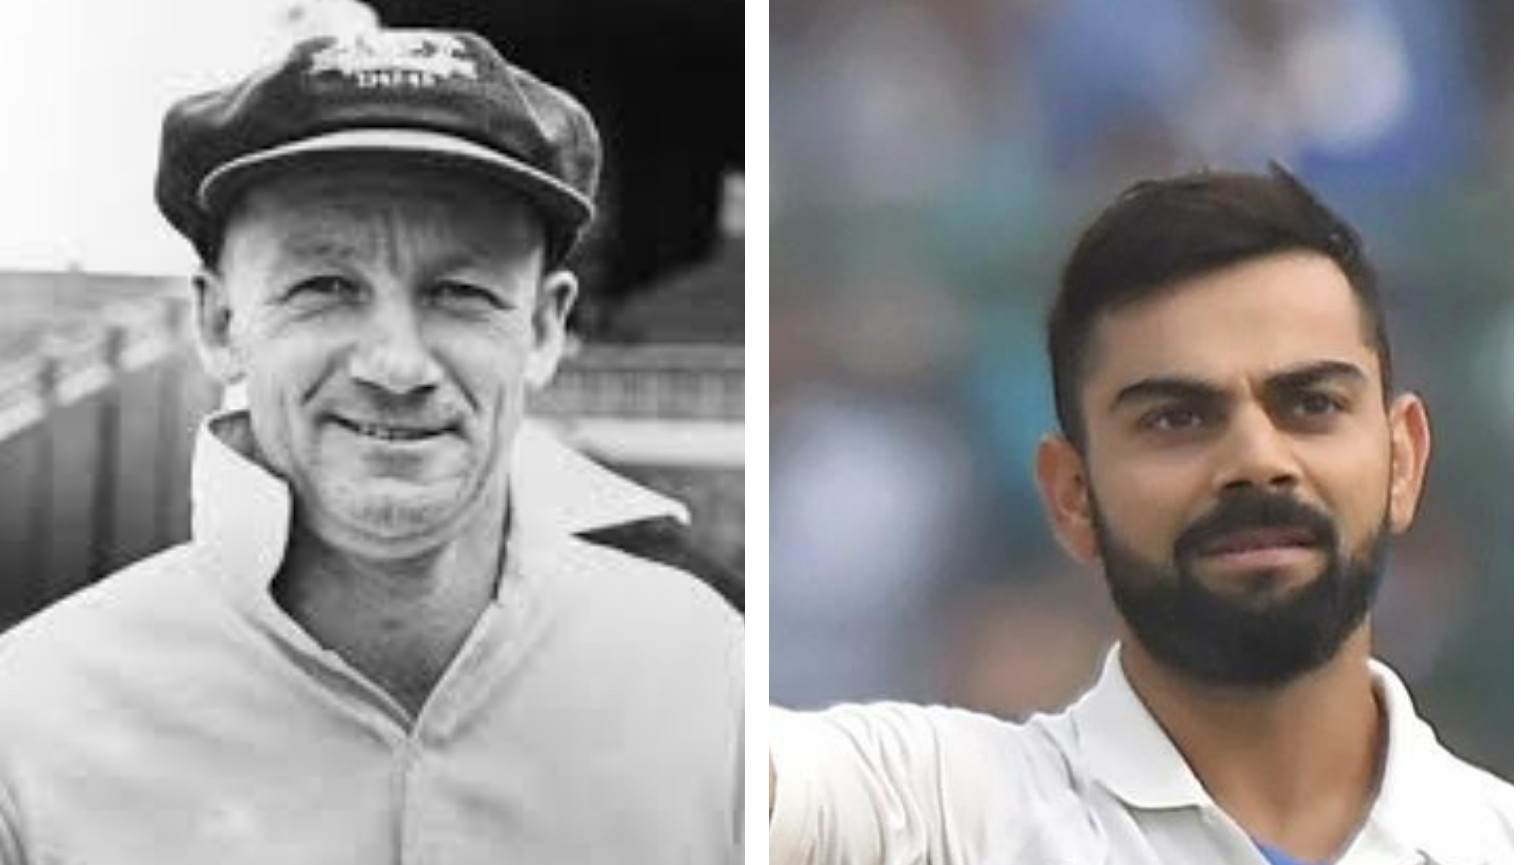 IND v WI 2018: Virat Kohli in line to coming second only to Sir Don Bradman